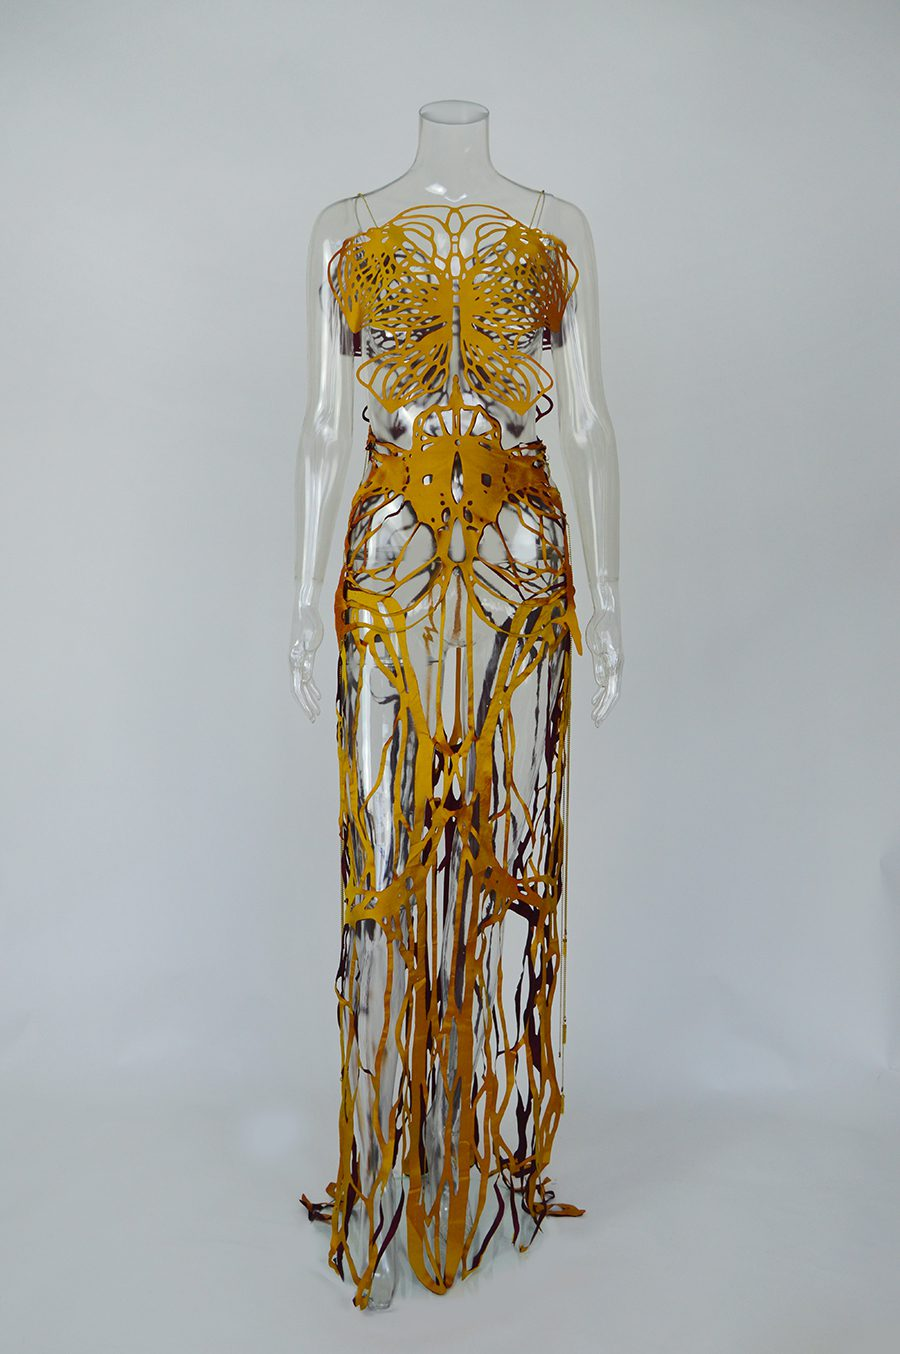 2017-Amy-Karle-Internal-Collection-yellow-silk-dress-based-on-ligaments-08